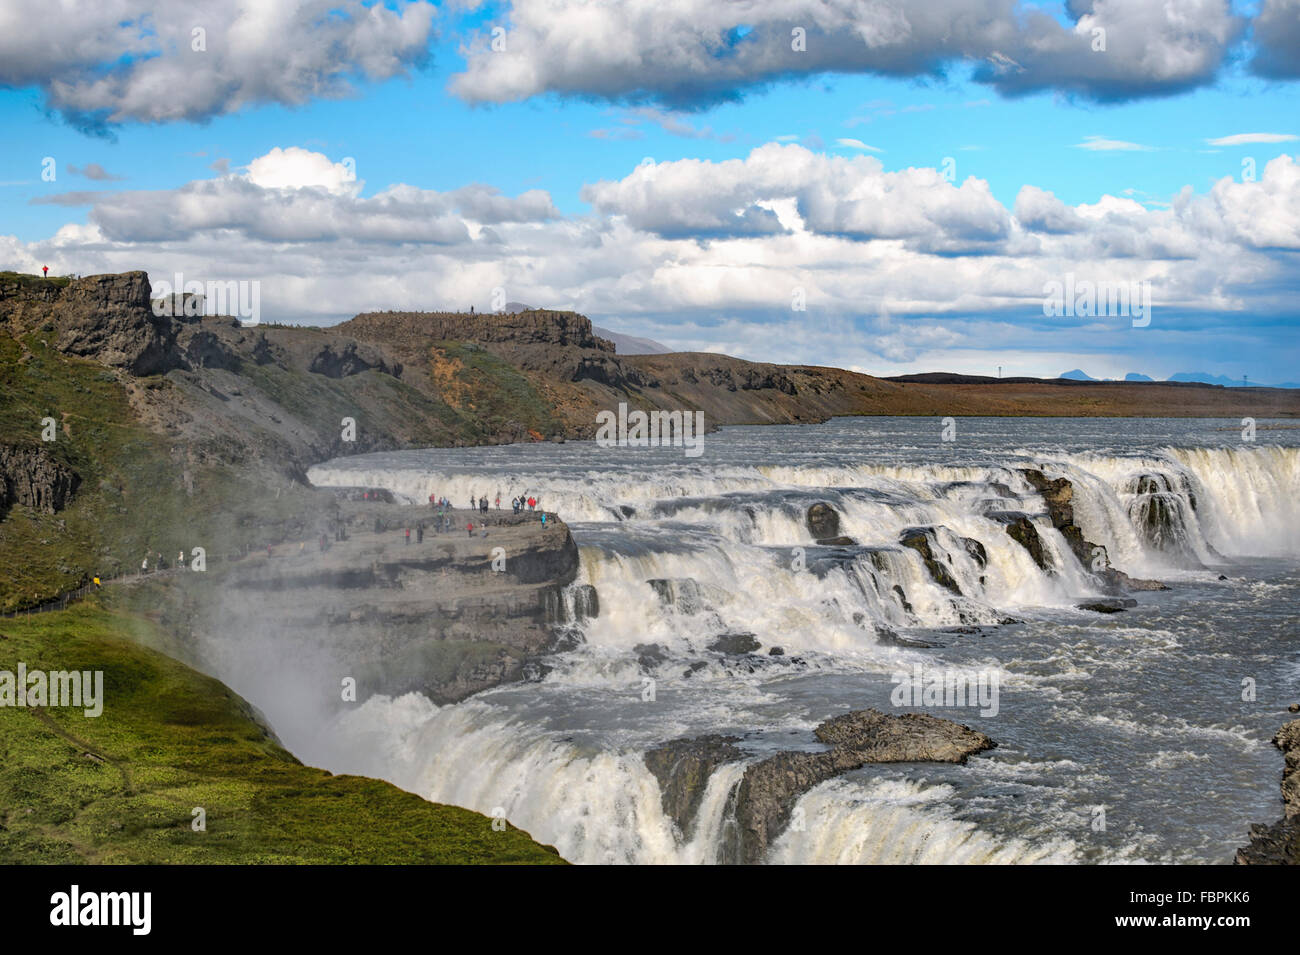 gullfoss-waterfall-on-the-golden-circle-tour-in-iceland-a-landmark-FBPKK6.jpg